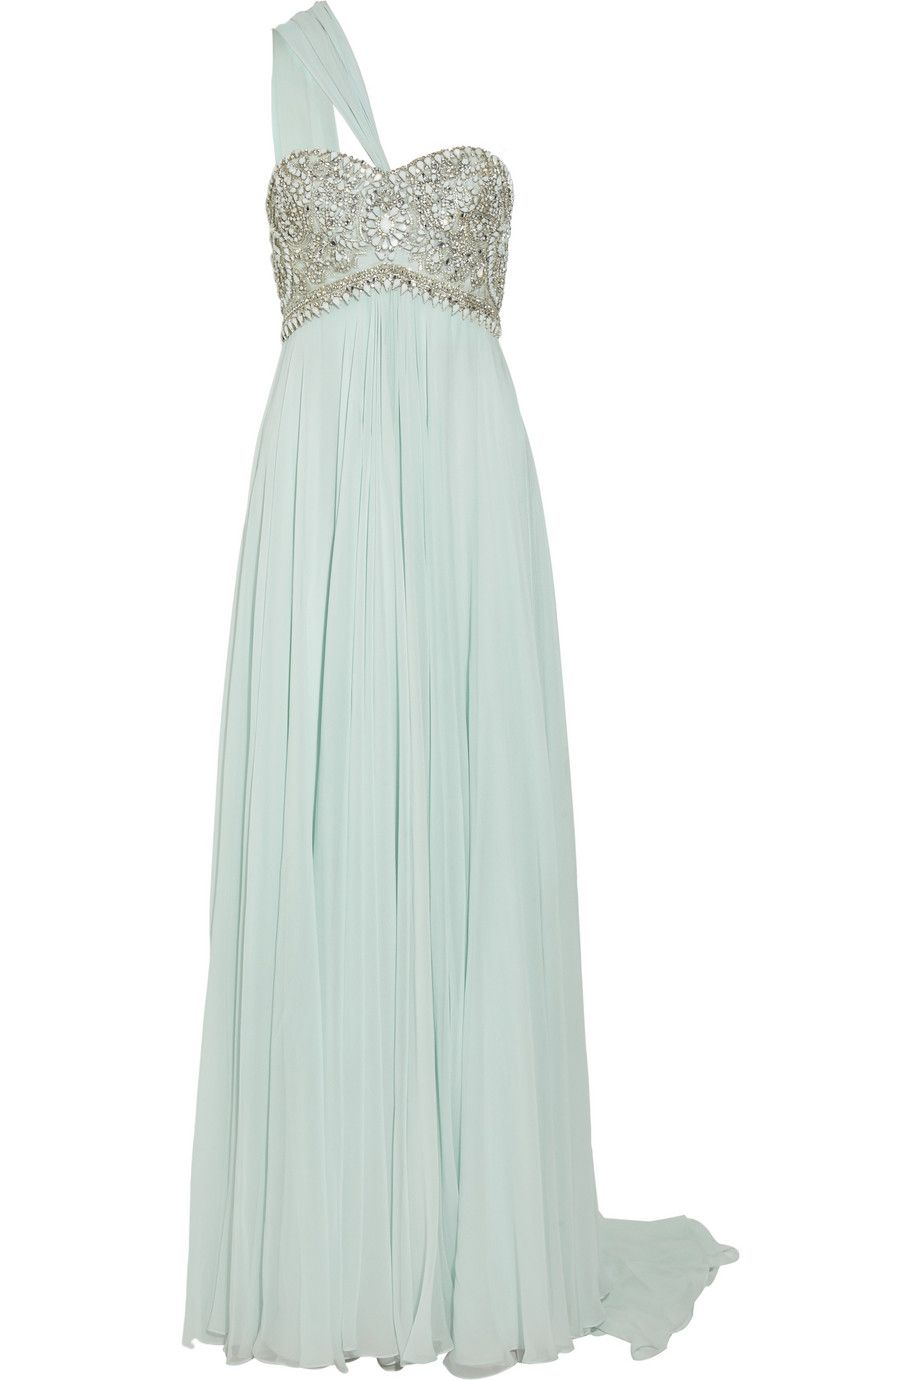 Would make a gorge bridesmaid dress prom dresses pinterest would make a gorge bridesmaid dress ombrellifo Images